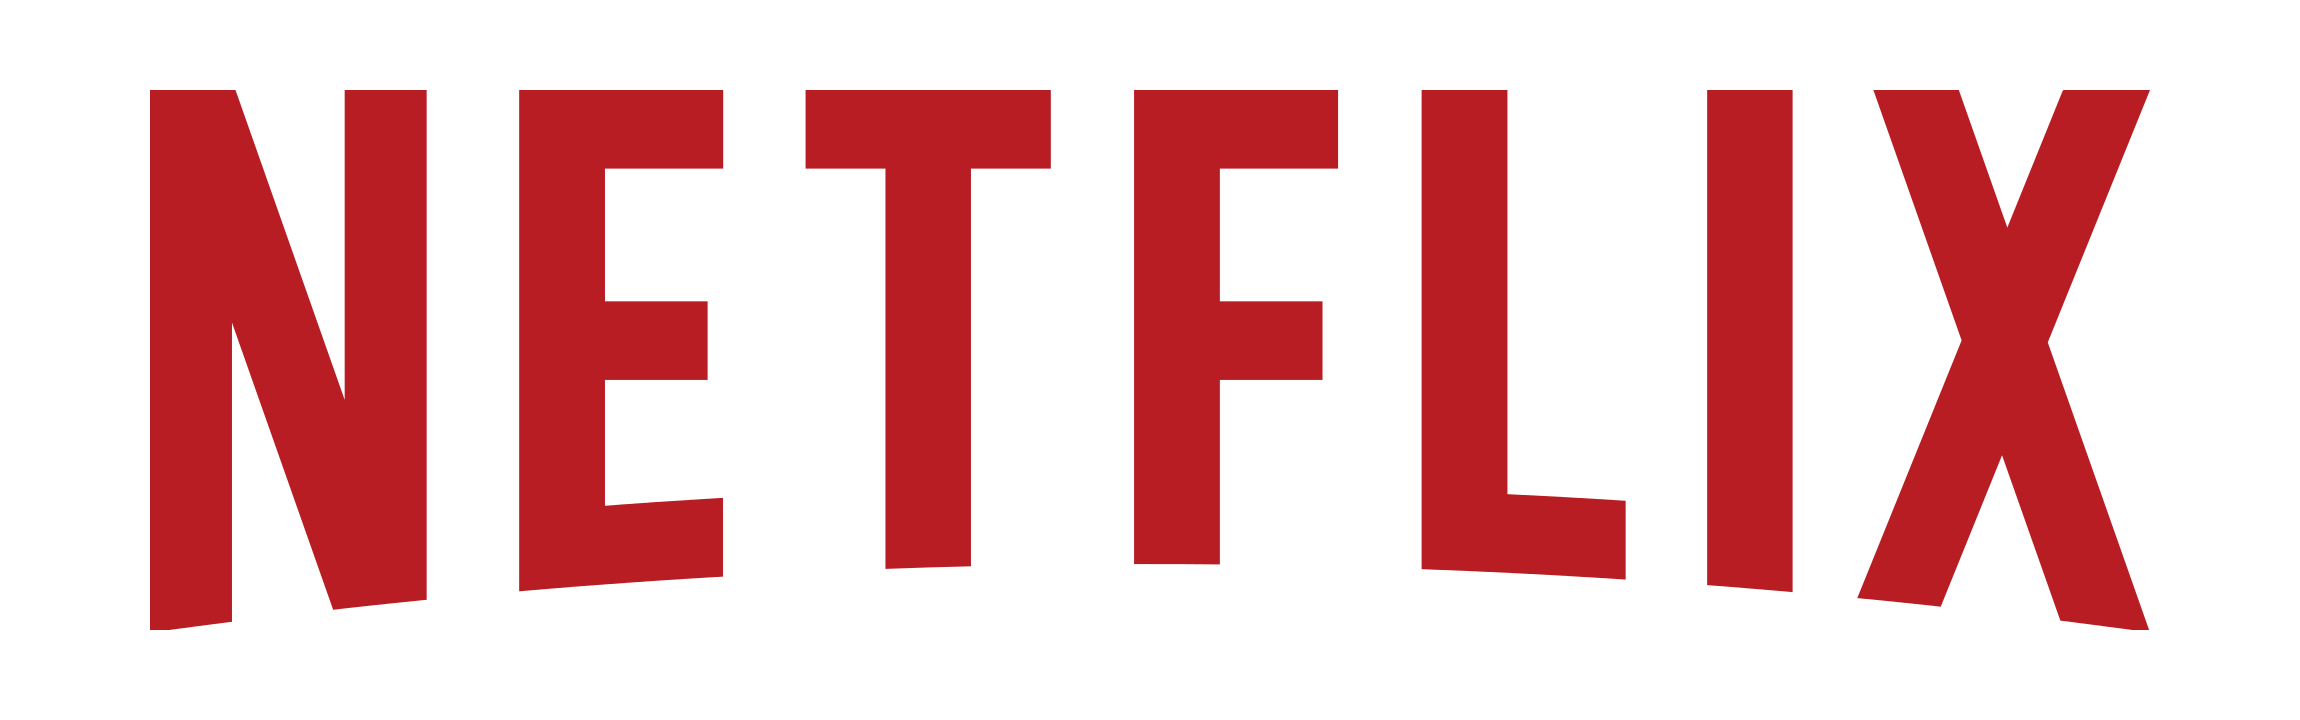 Netflix logo 2017 png. Symbol meaning history and